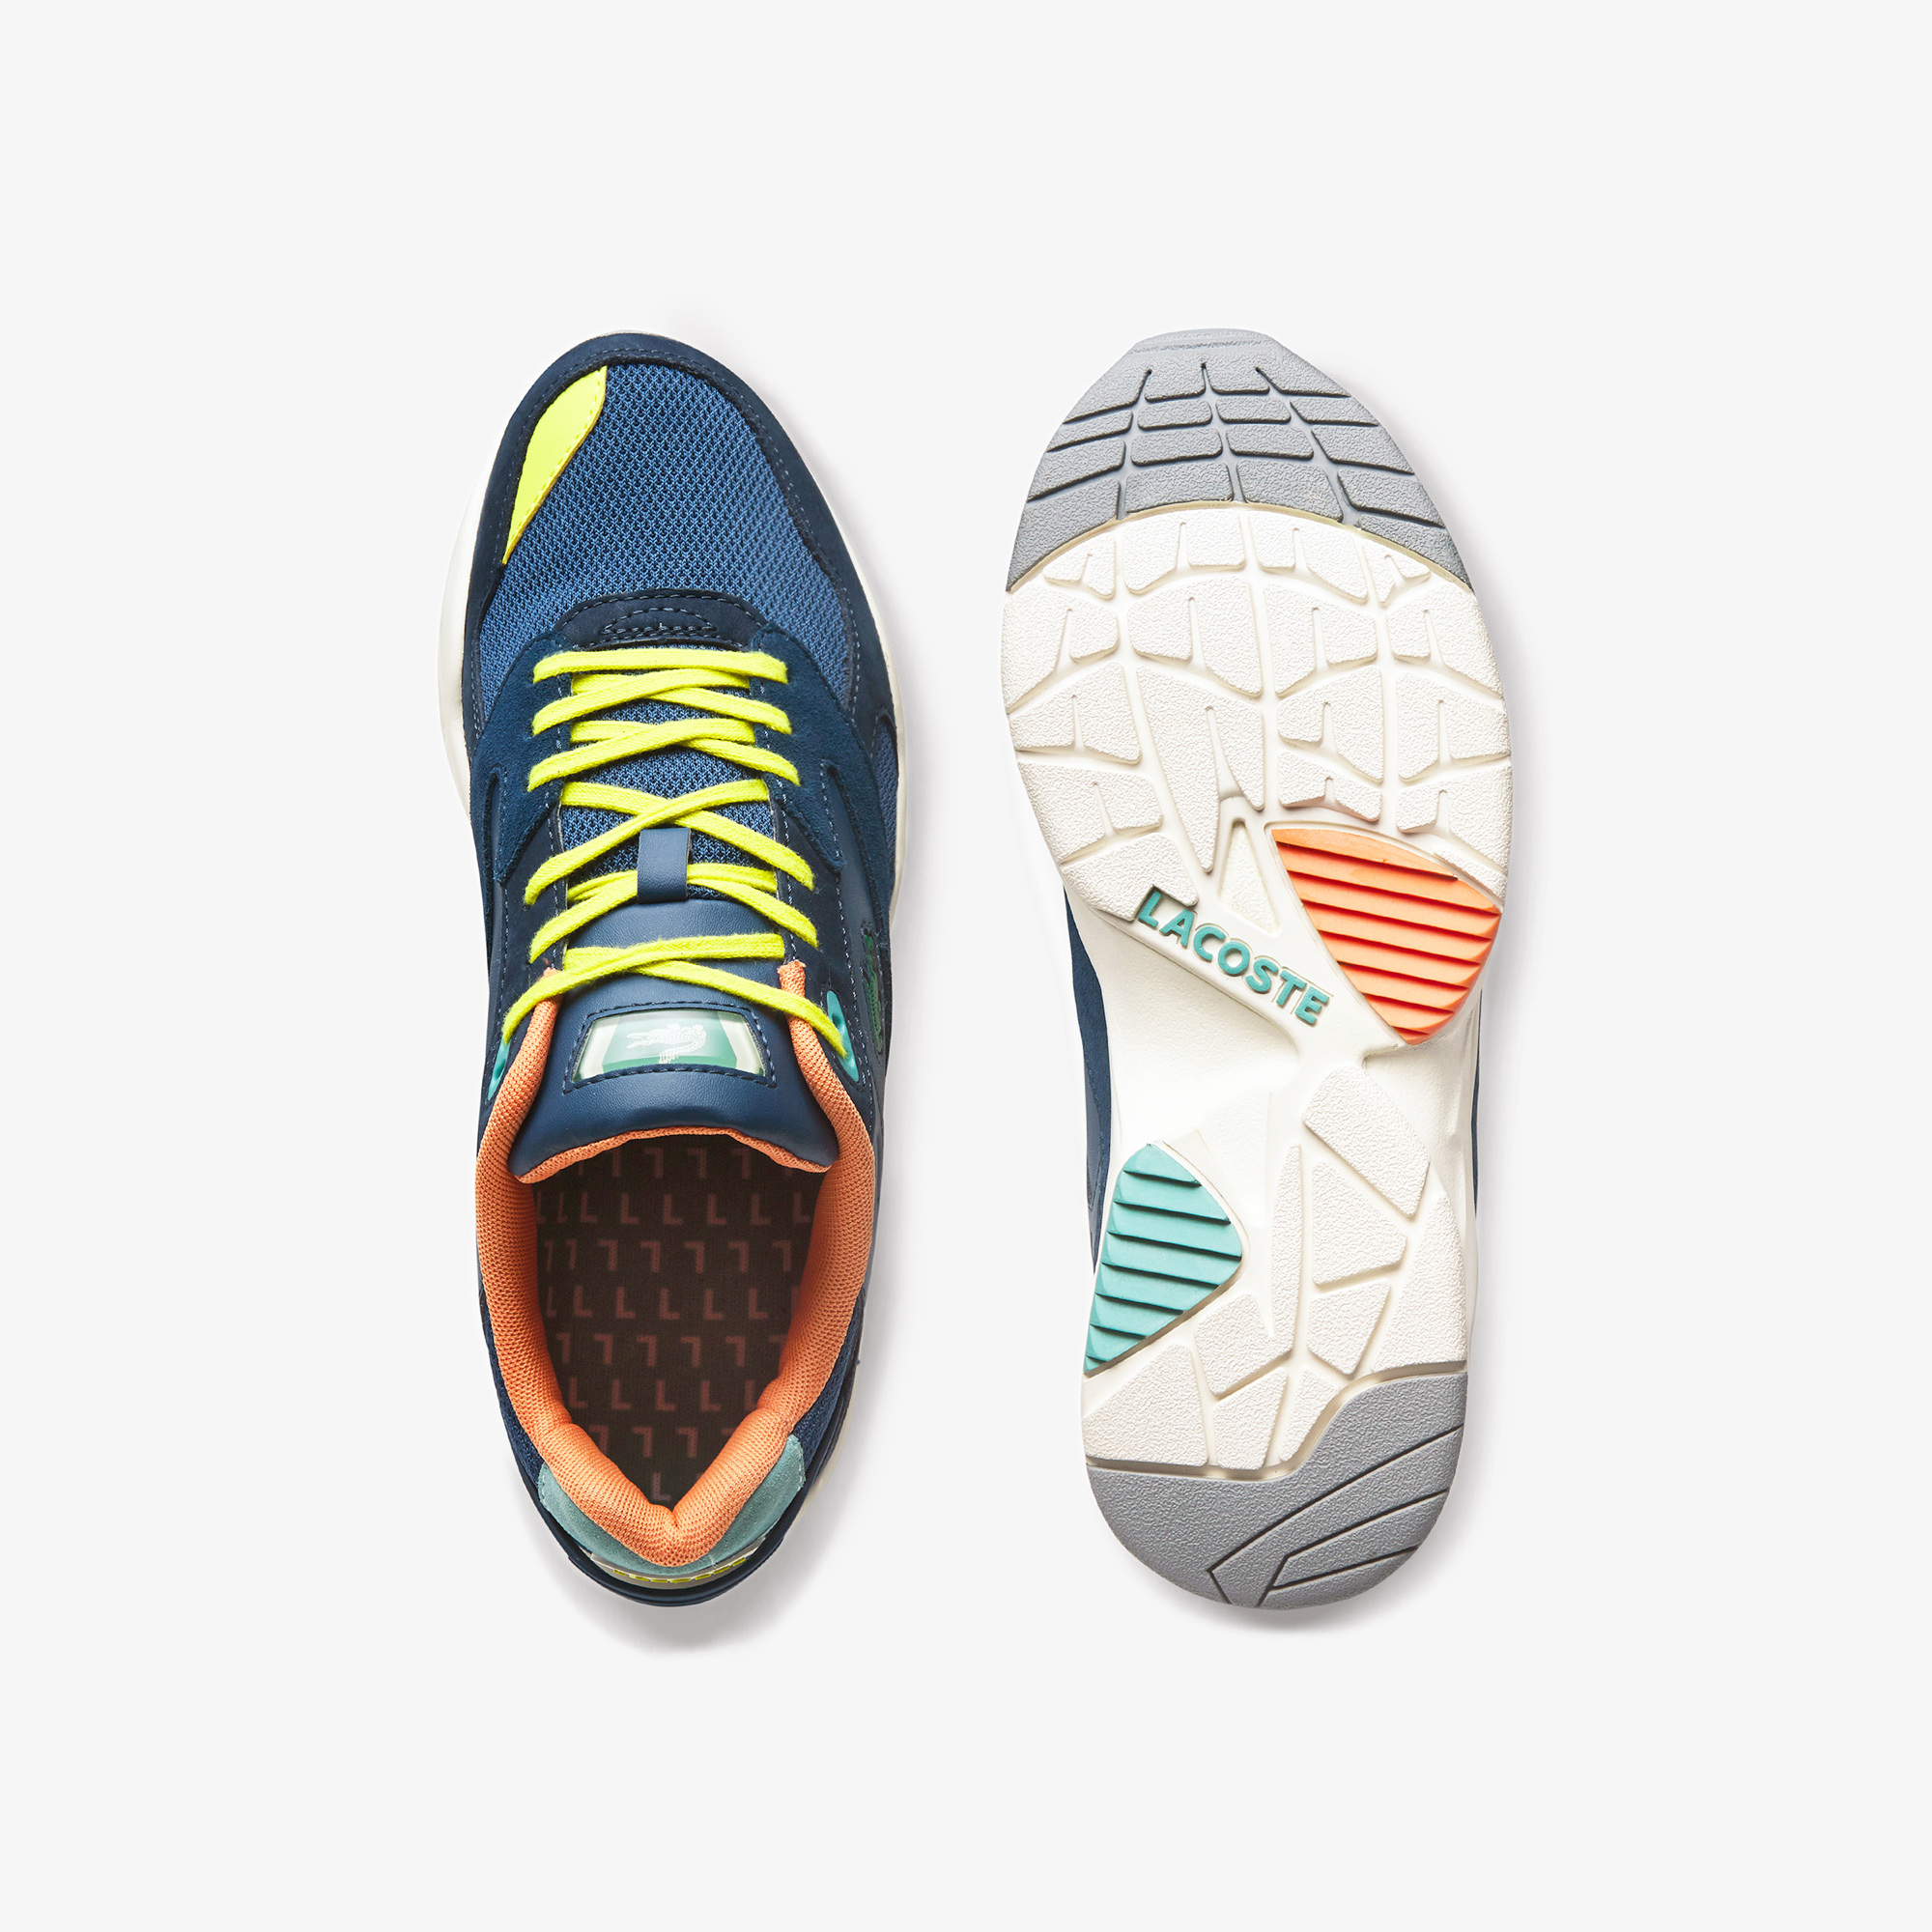 Lacoste Men's Storm 96 Textile, Synthetic and Leather Sneakers